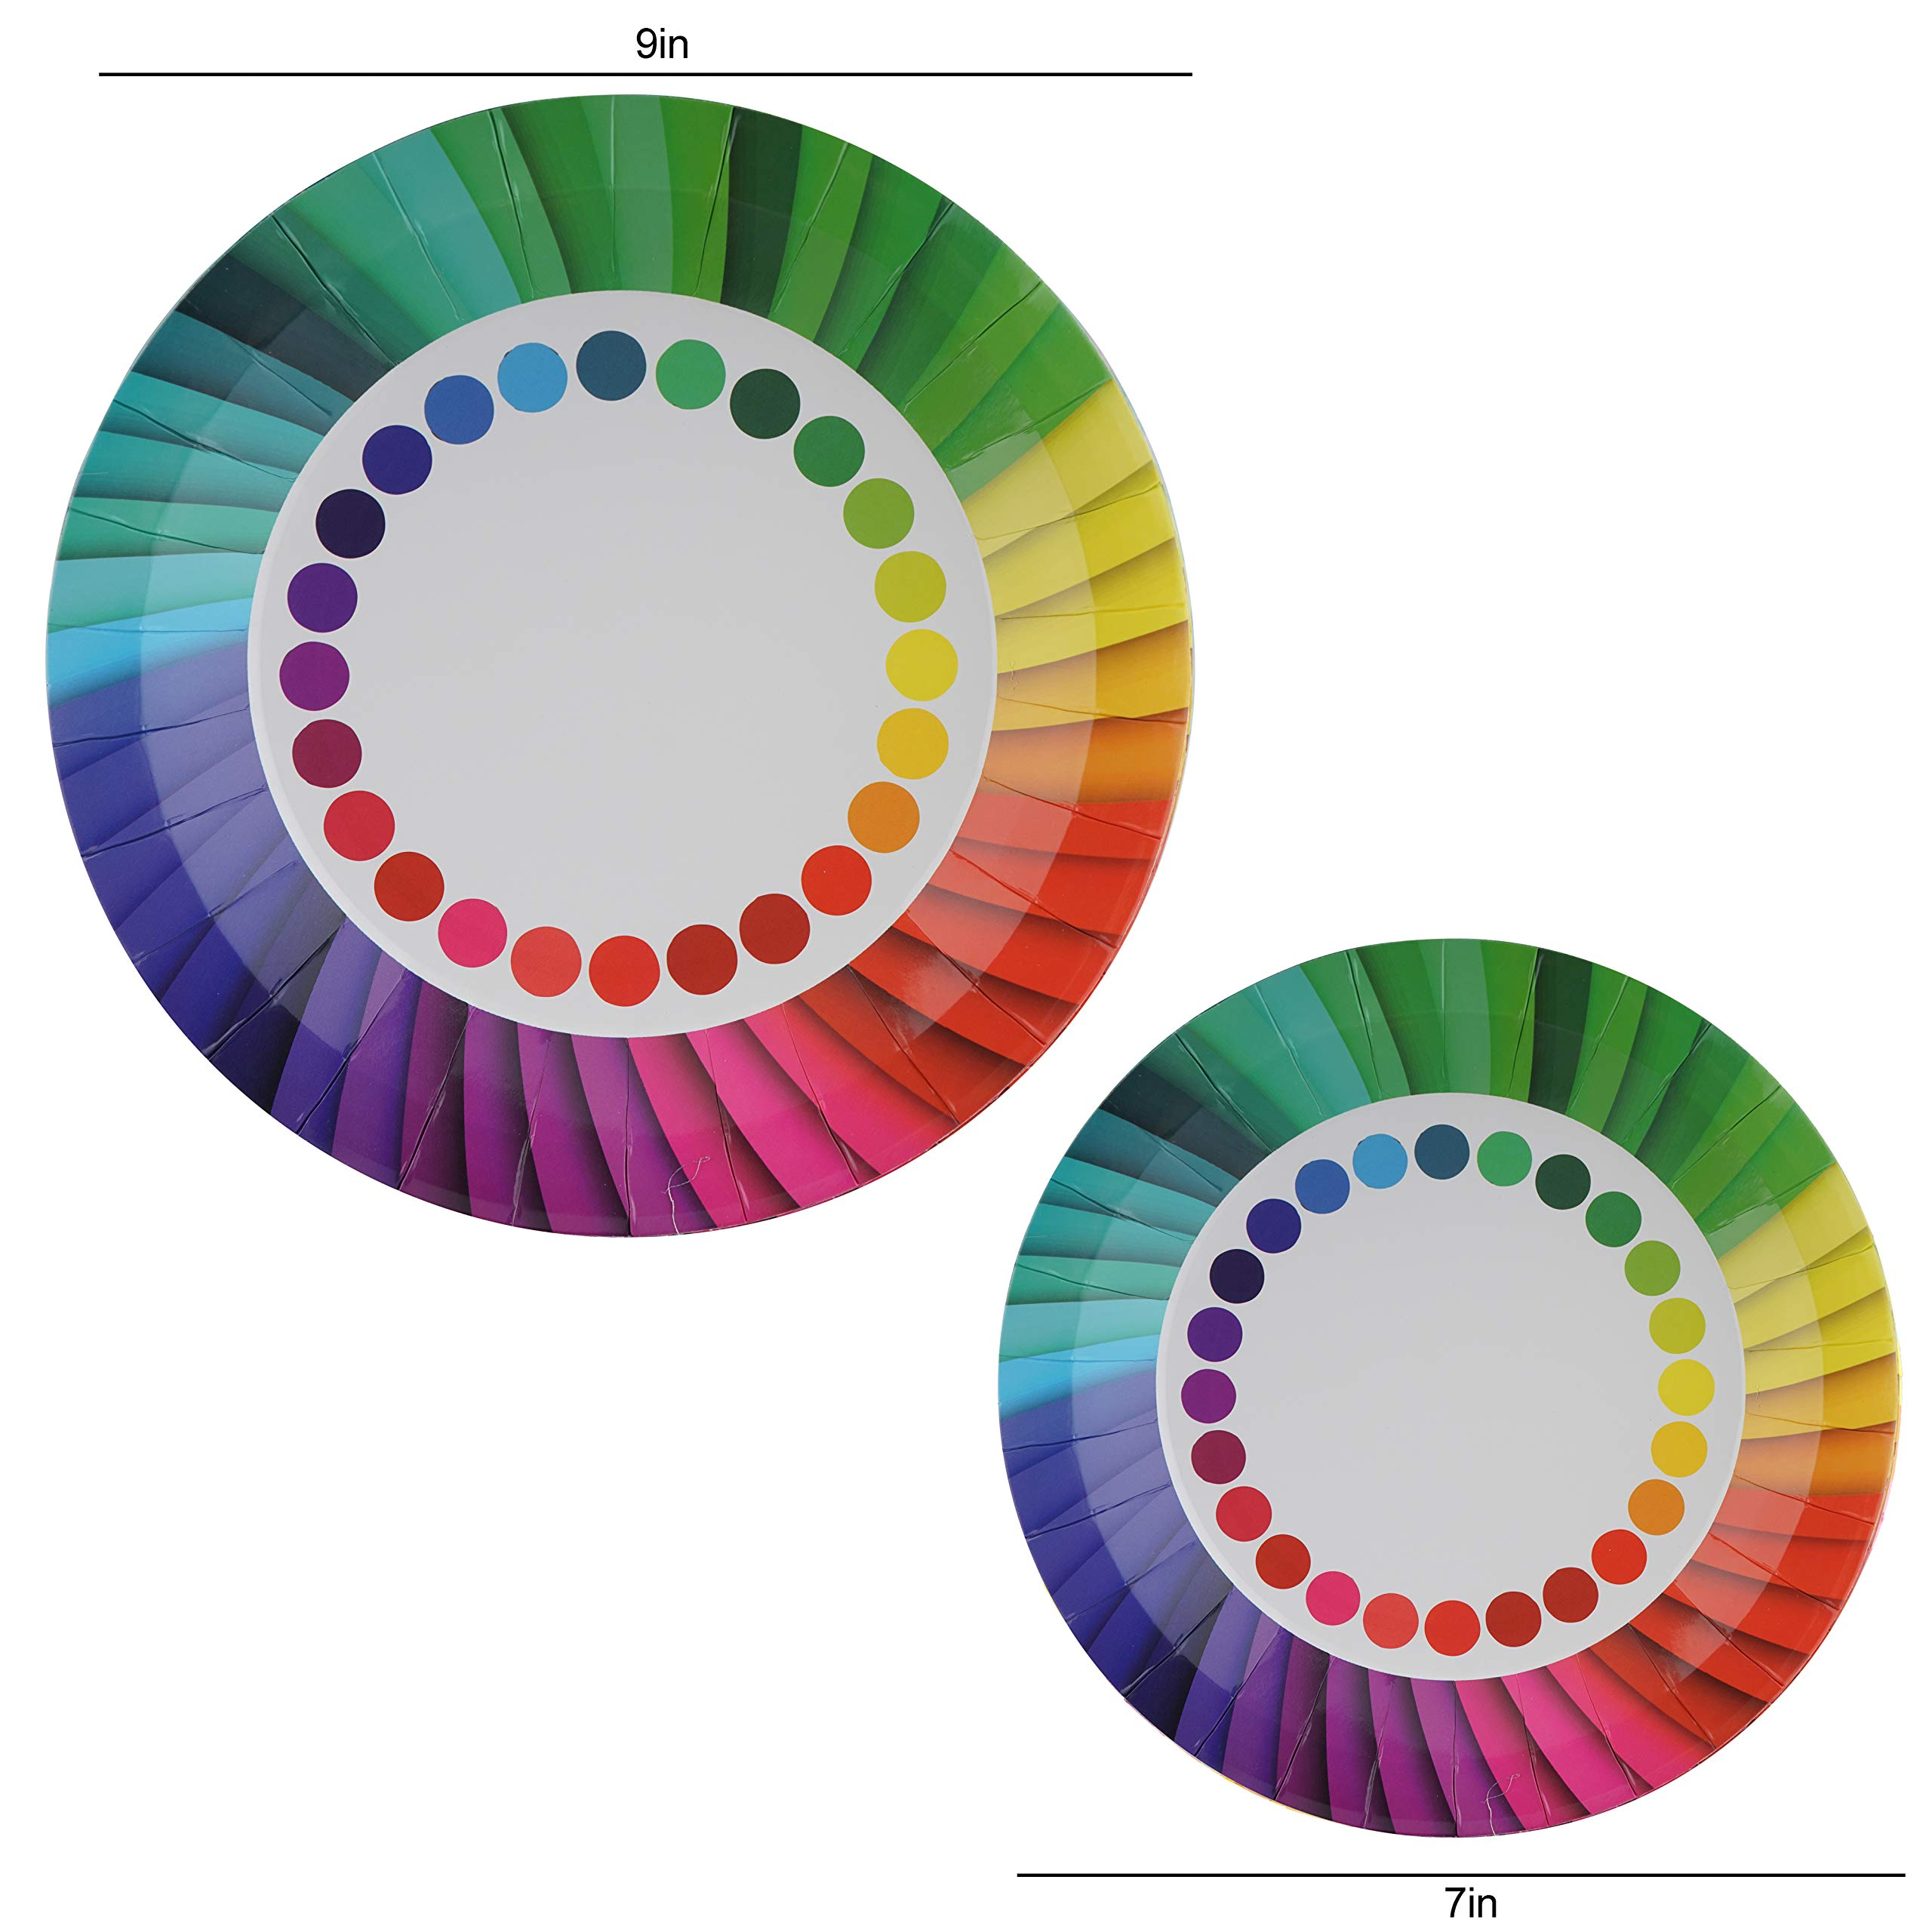 82 Piece Rainbow Party Set Including Banner, Plates, Cups, Napkins and Tablecloth, Serves 20 by Scale Rank (Image #5)